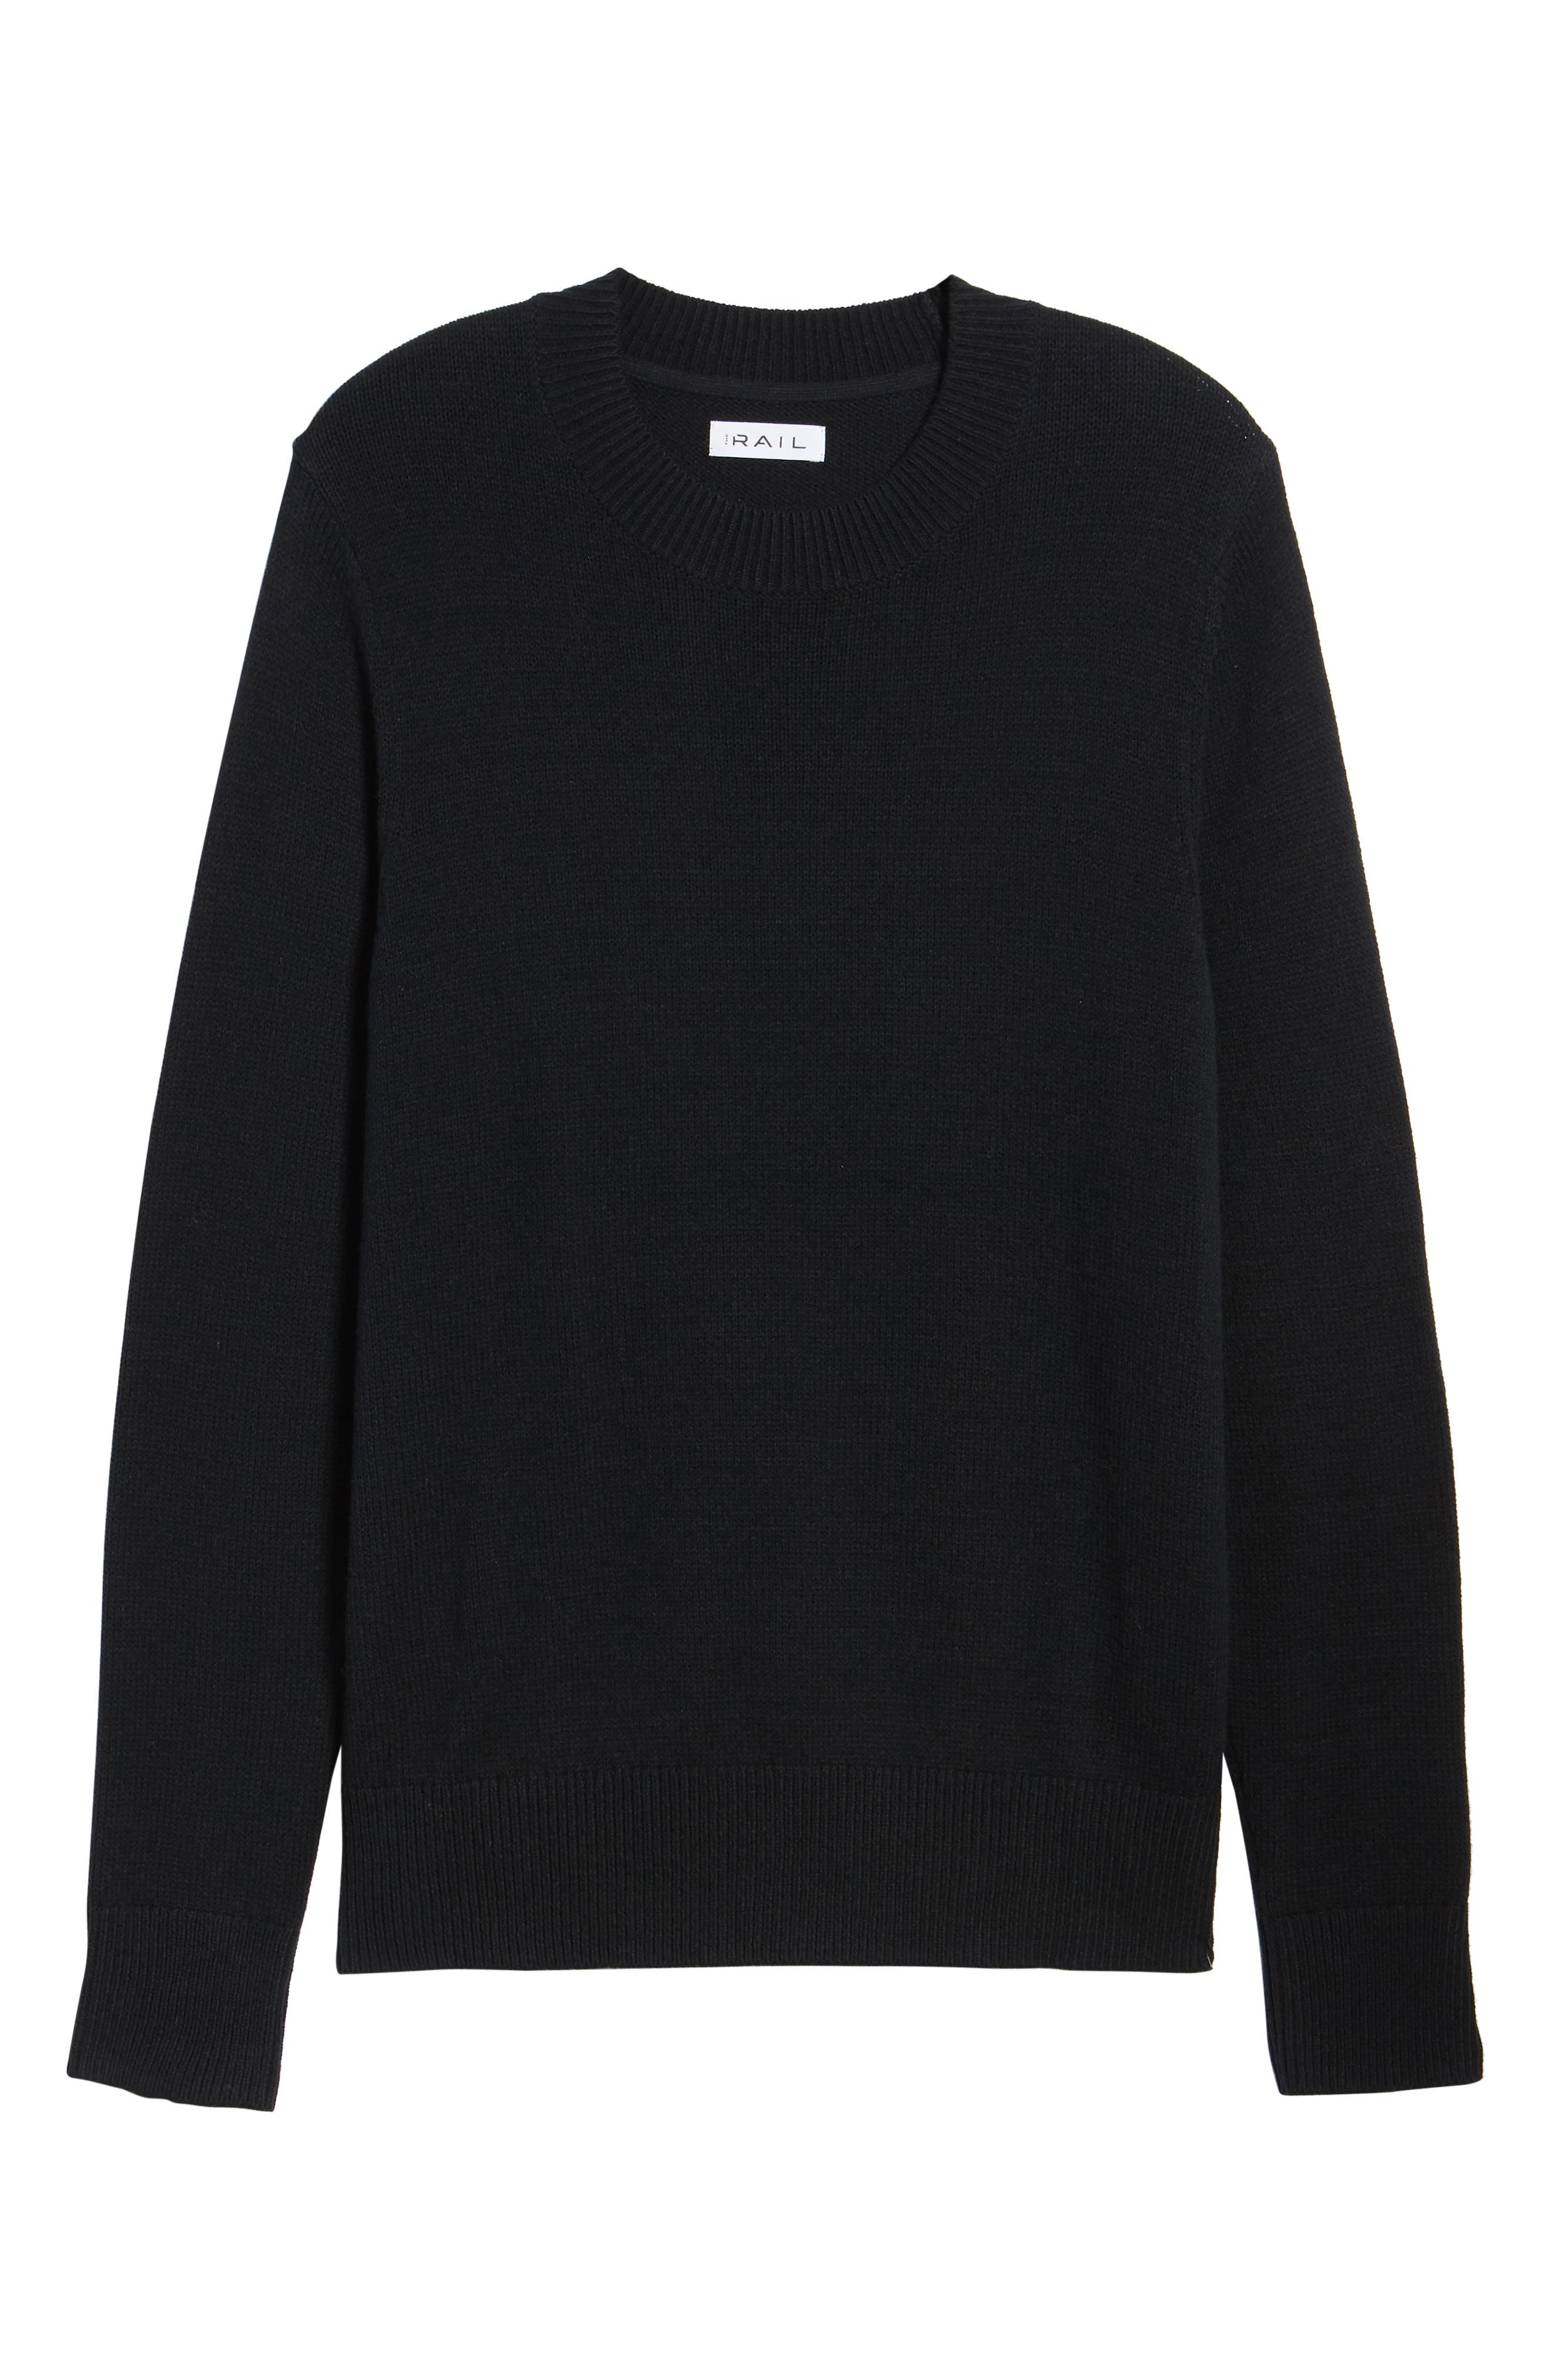 Crewneck Sweater,                             Alternate thumbnail 6, color,                             BLACK ROCK